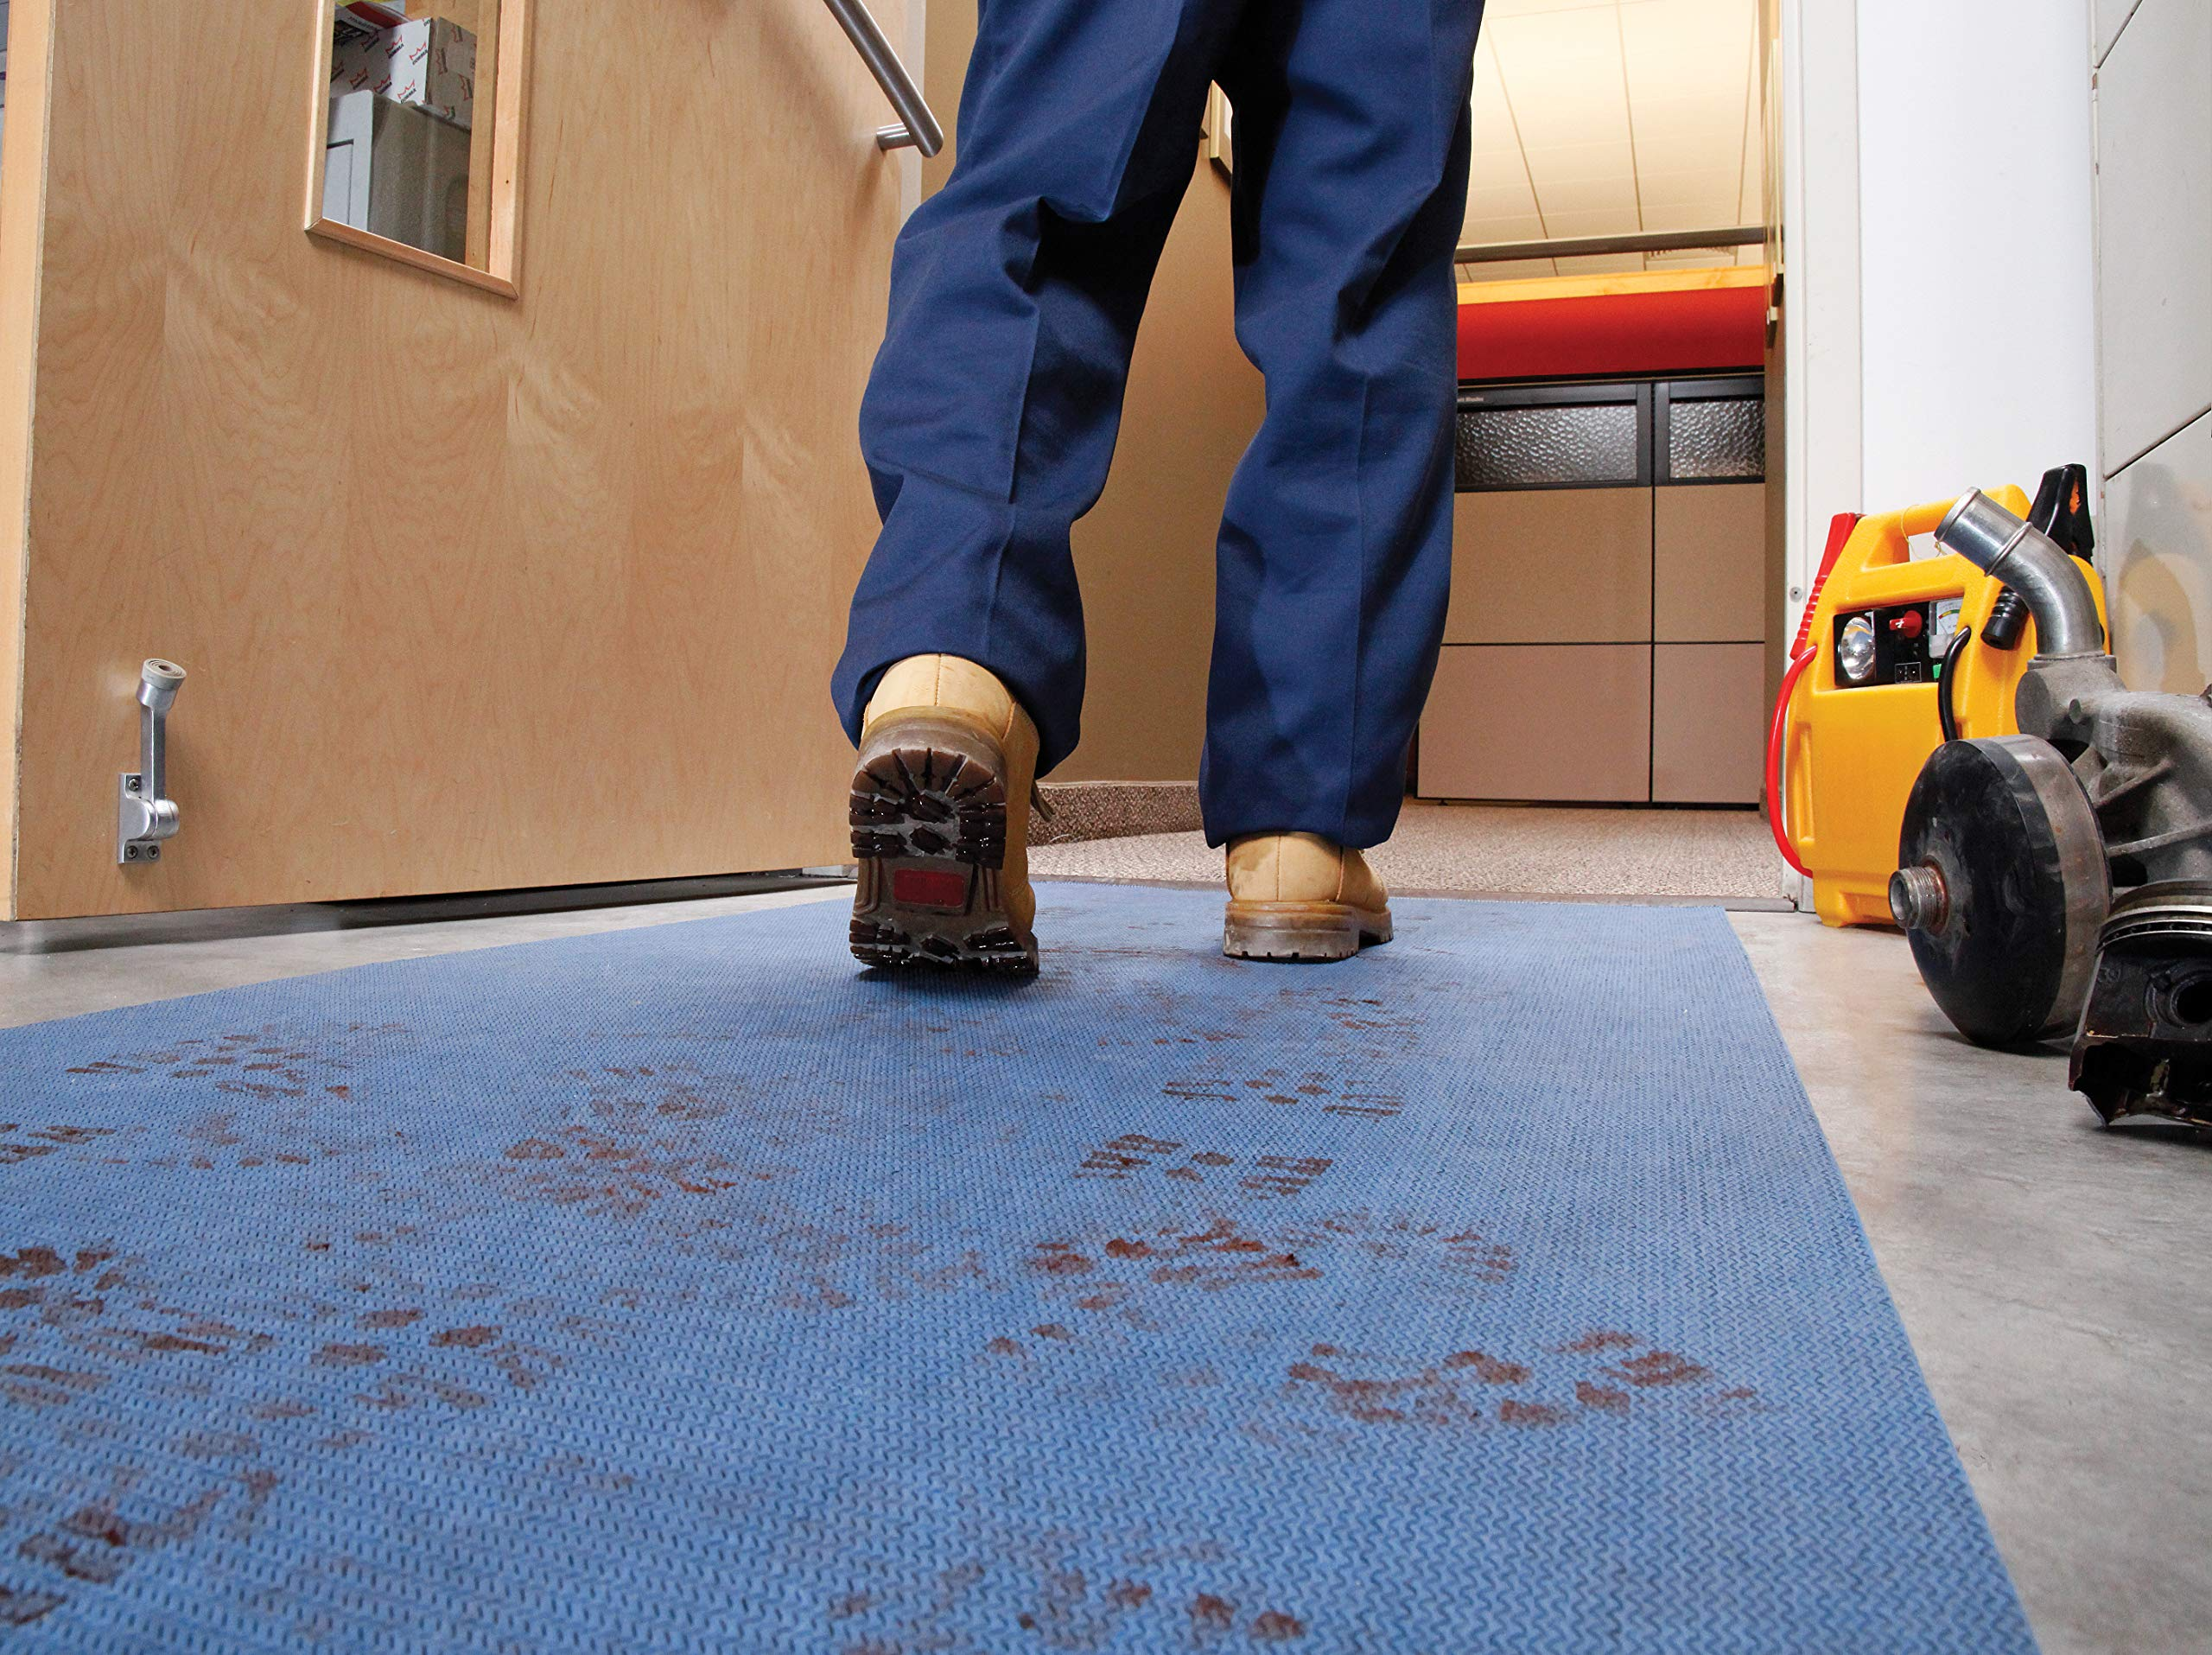 New Pig Protective Floor Mat for Contracting Projects - PM50240